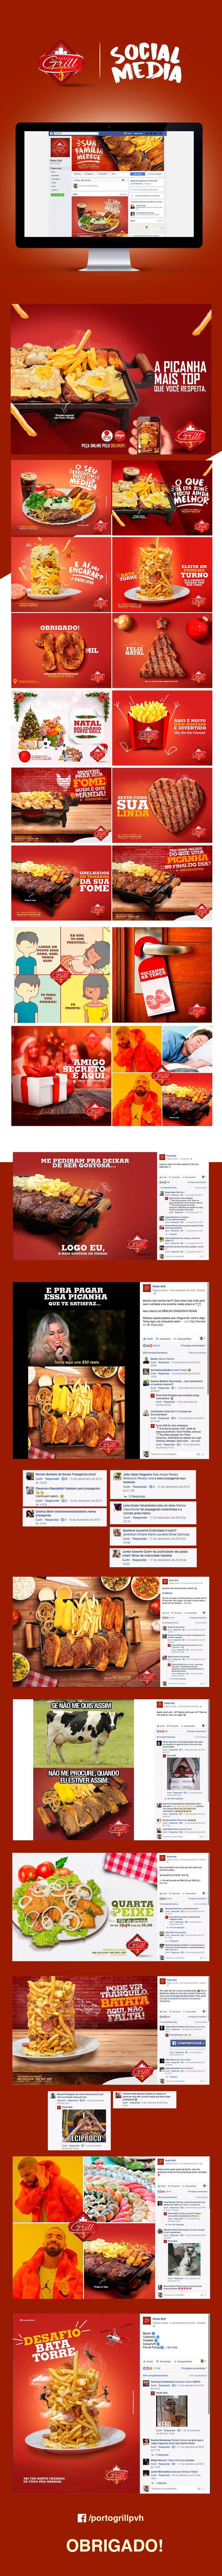 Porto Grill - Mídias sociais on Behance